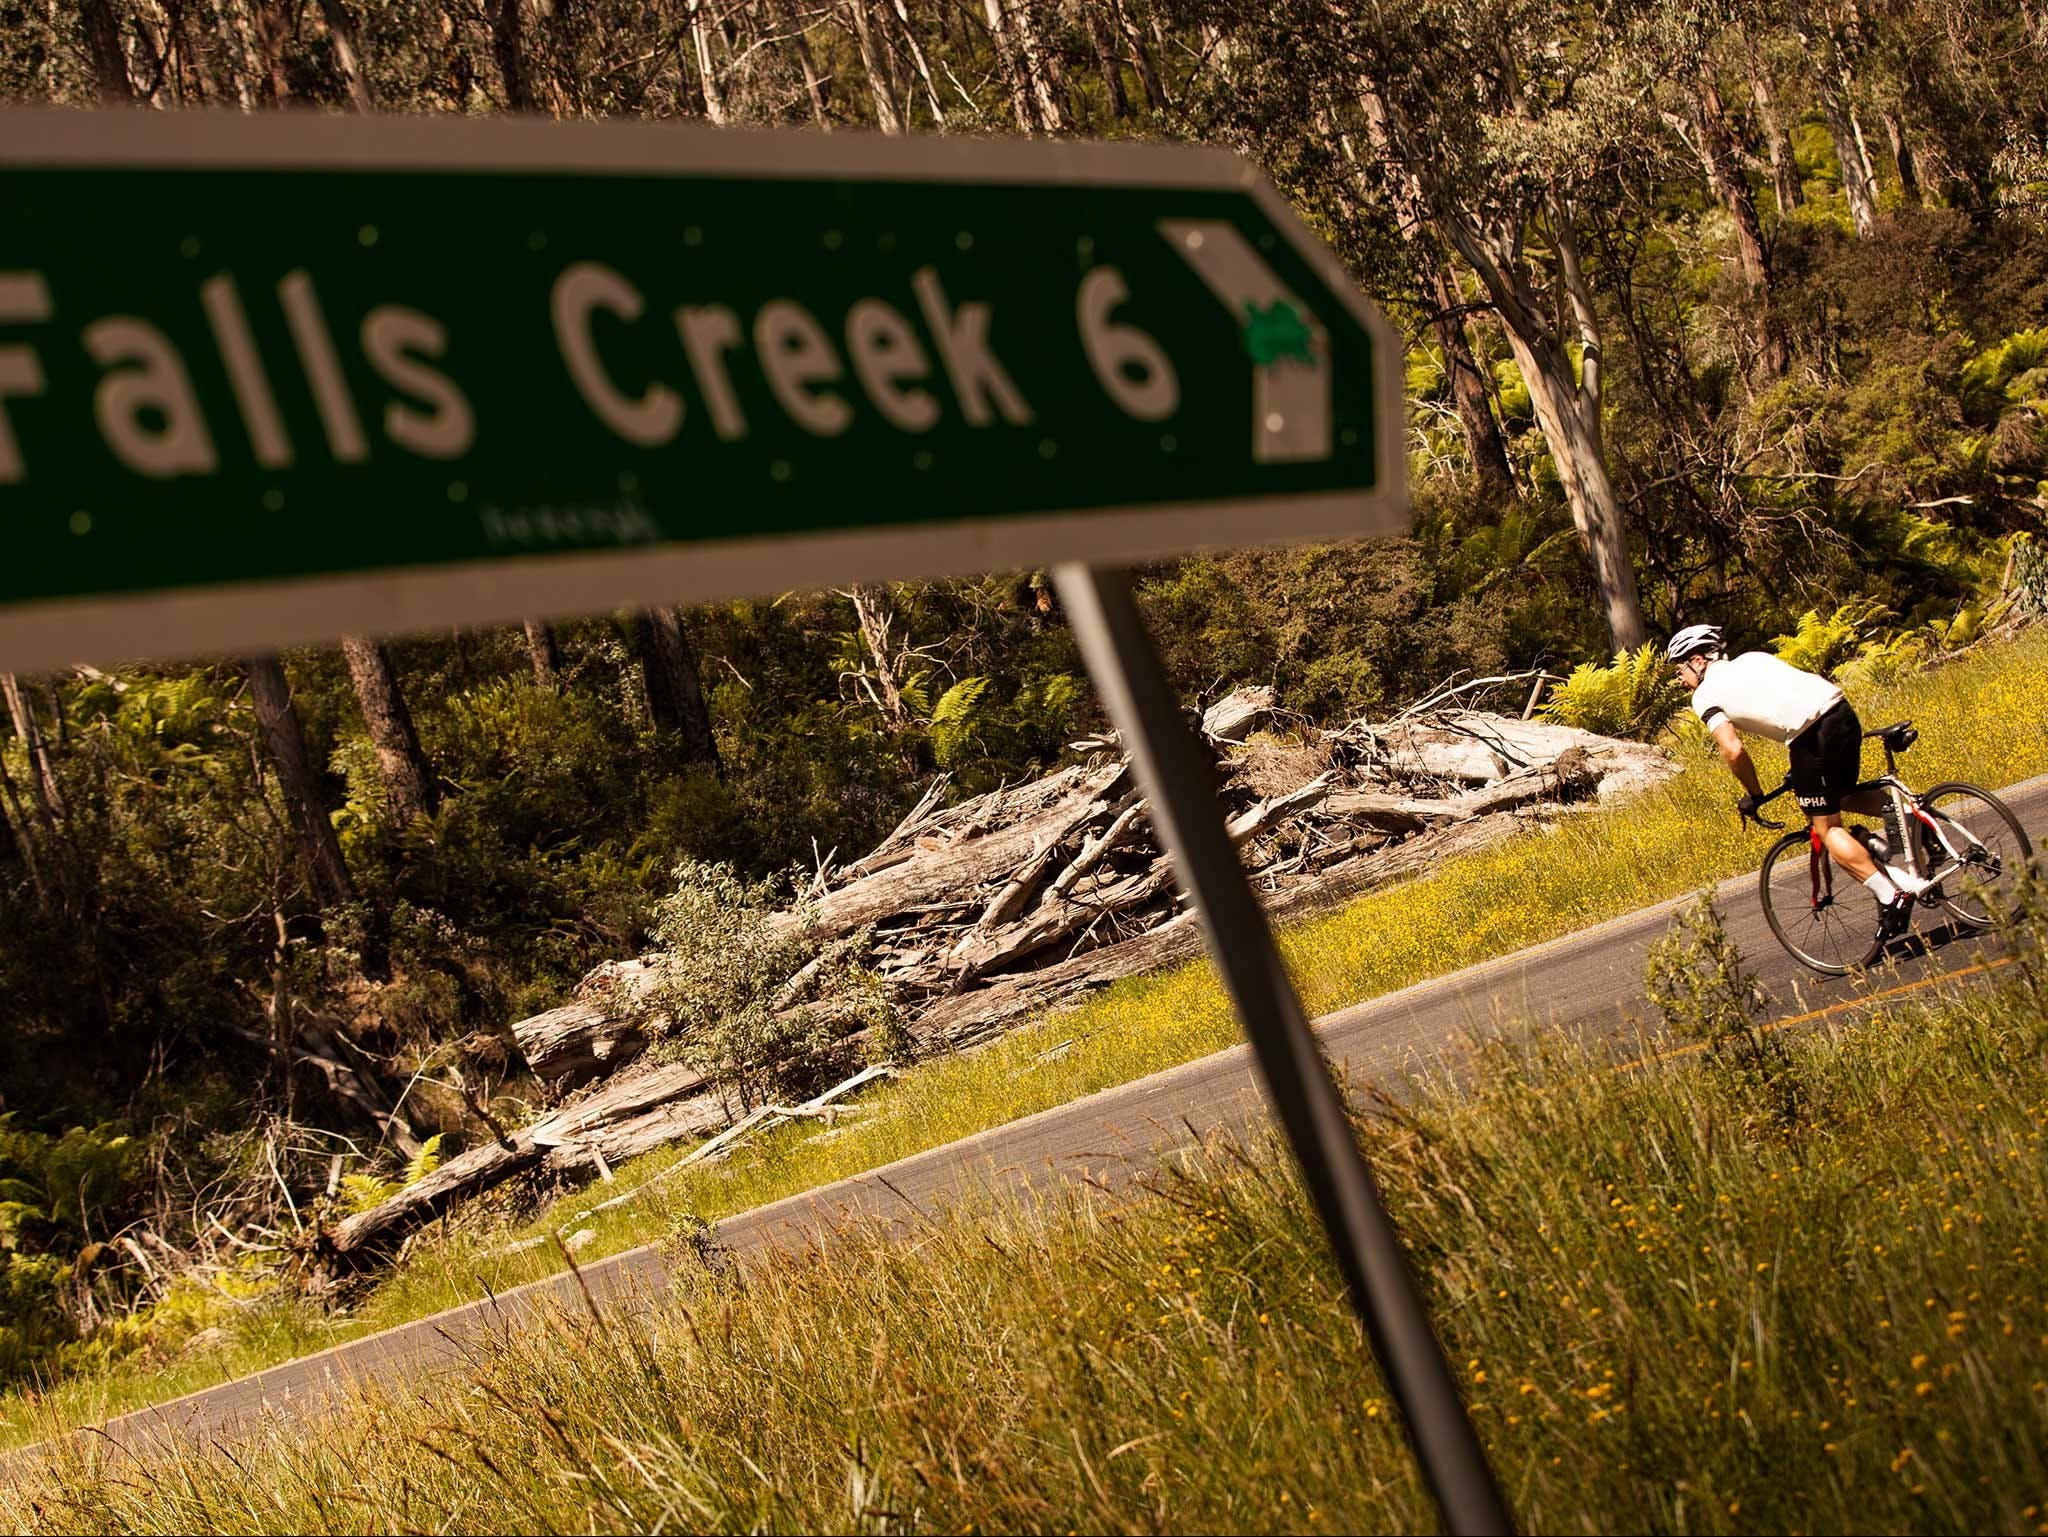 7 Peaks Ride - Falls Creek - Accommodation Broome